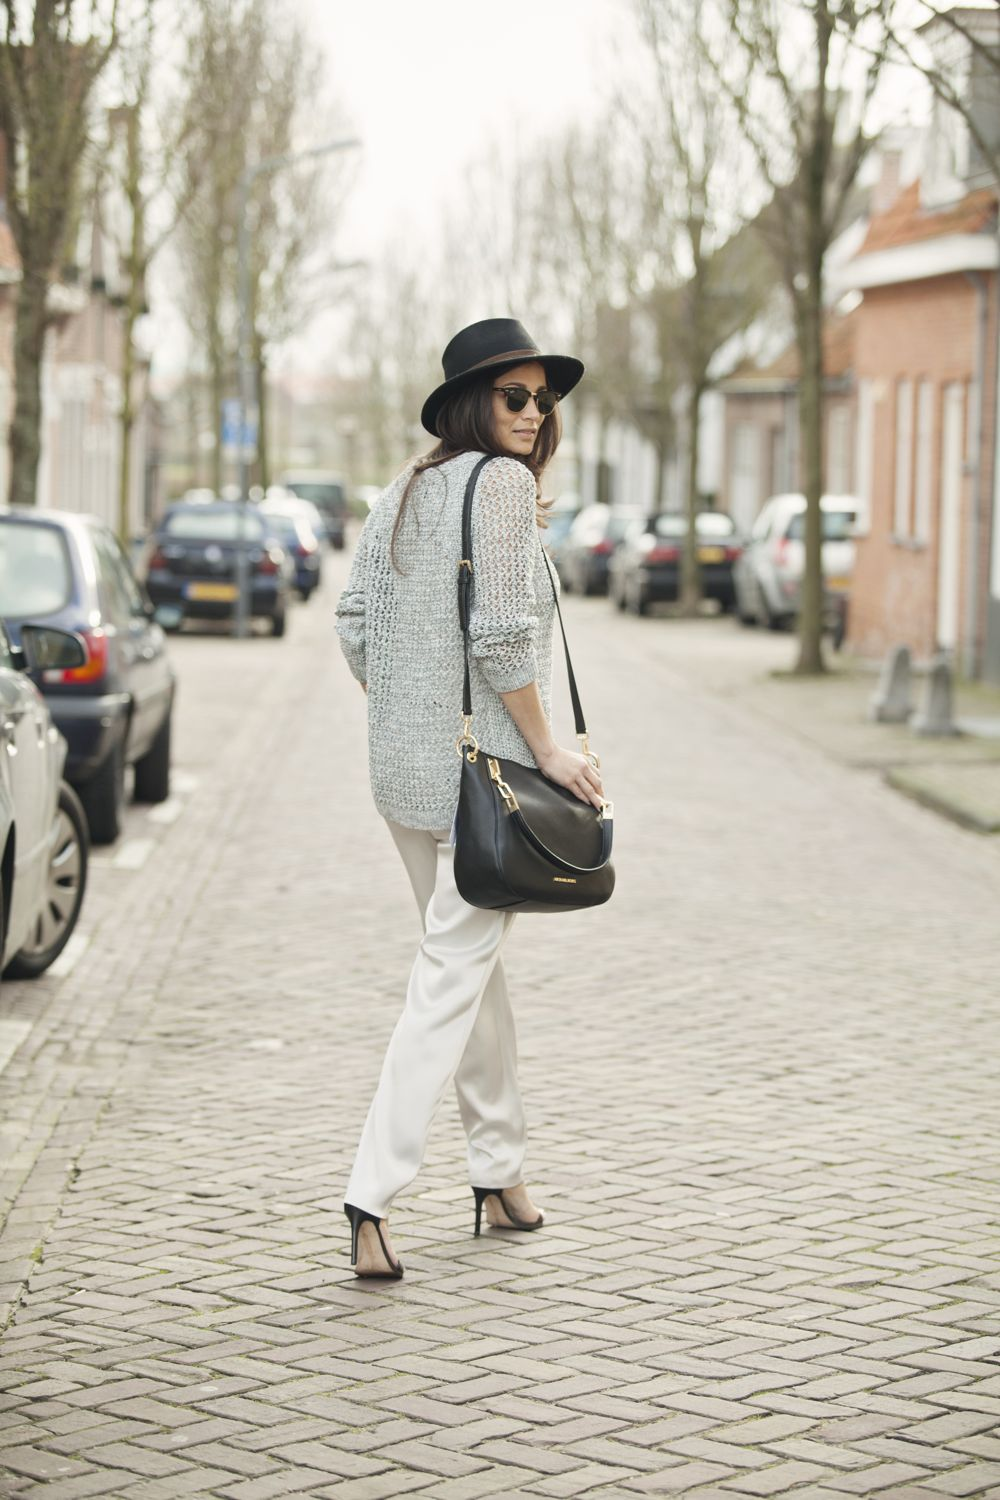 streetstyle spring summer 2015 street look shades of grey BlogForShops